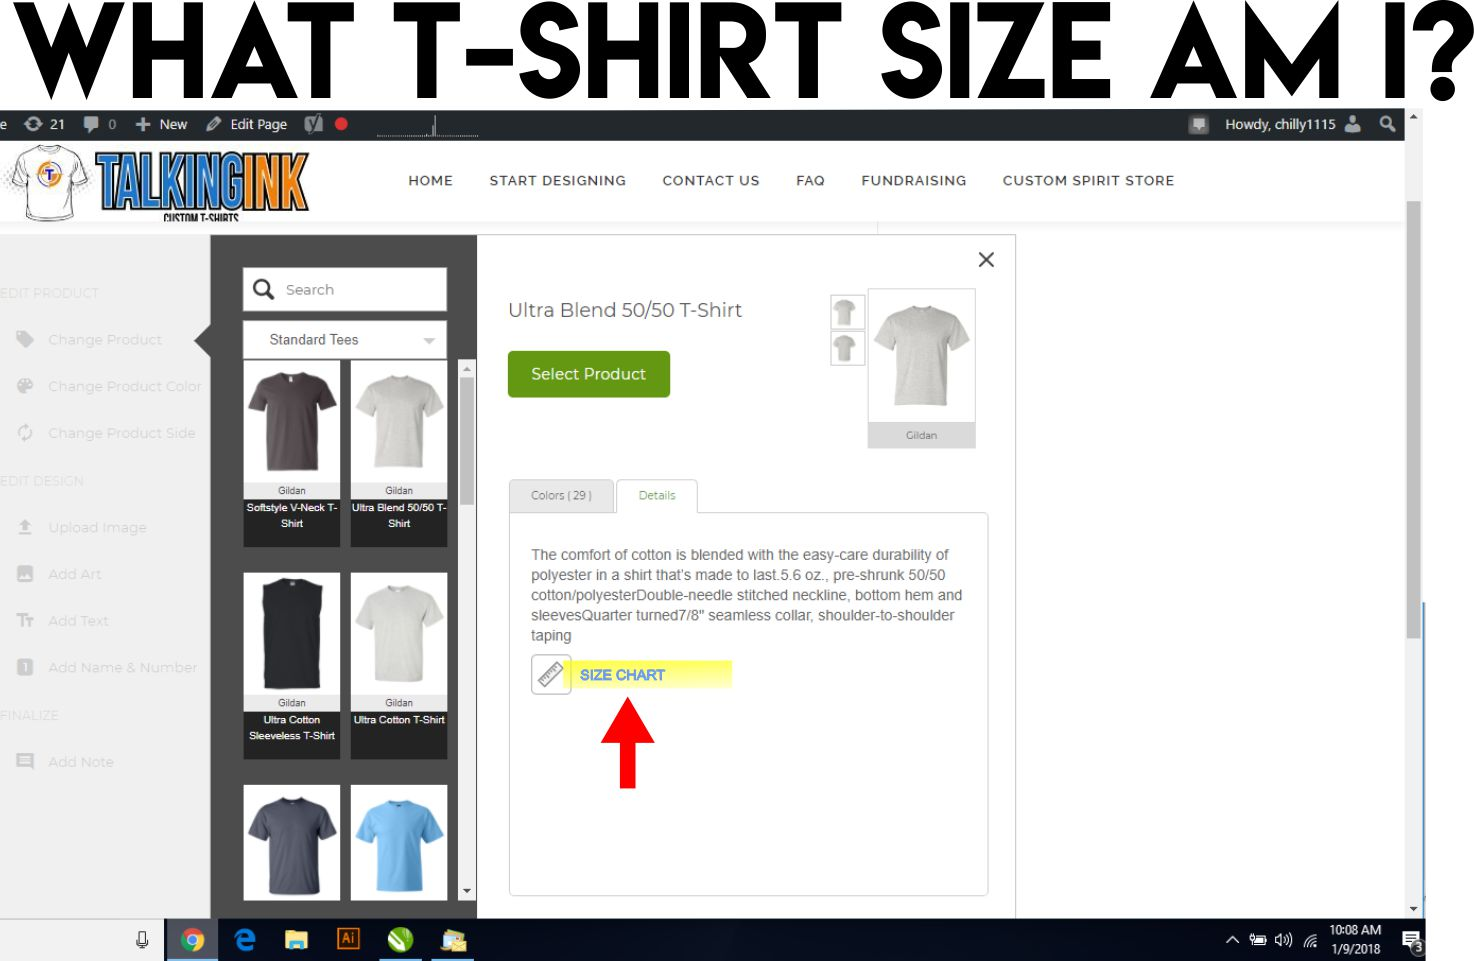 what t-shirt size am i